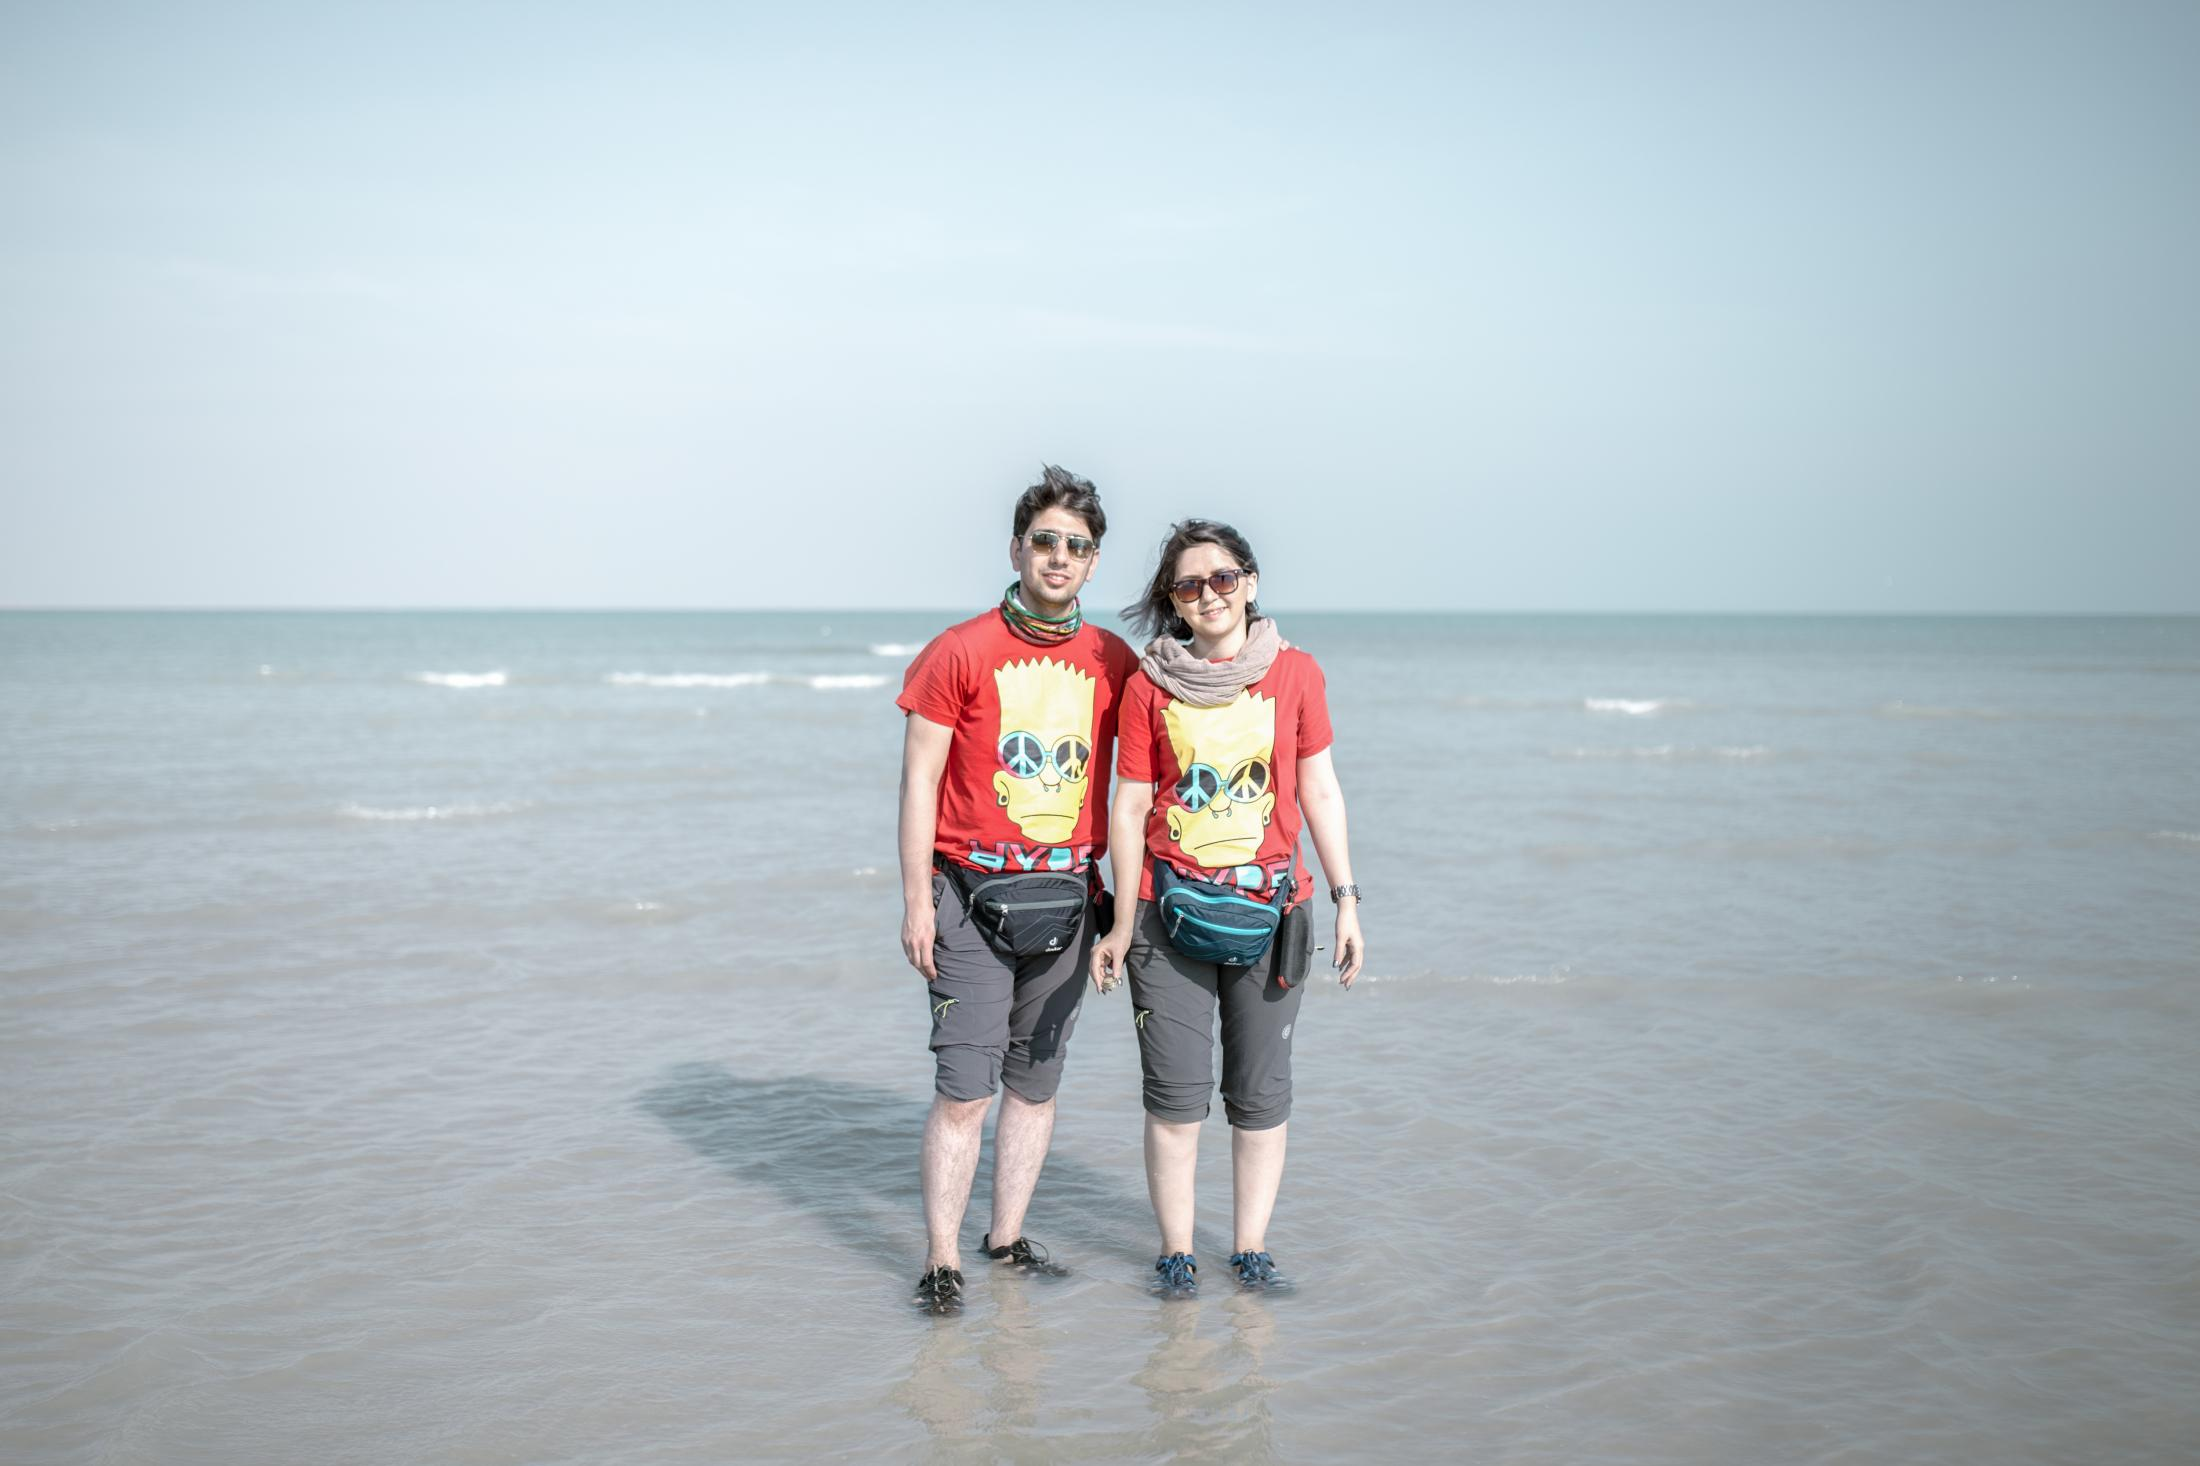 Iranian tourist couple takes leisurely walks down the Oman beach in the port of Beris which is located 60 km east of Chabahar area in Sistan and Baluchistan province. Regardless of the population of more than 5,000 people and being on the sea, people lack secure access to freshwater in the Beris port. They still use tankers for drinking water. Despite the scarcity of water sources, 2017 witnessed an increase in the number of tourists to Sistan and Baluchestan, which promised to bring in some solace for the tottering local economy in which 95% of people living under the poverty line. The main attractions were sectors that did not depend on water. However, it failed to effect a significant change. Balochistan province. Iran.2018